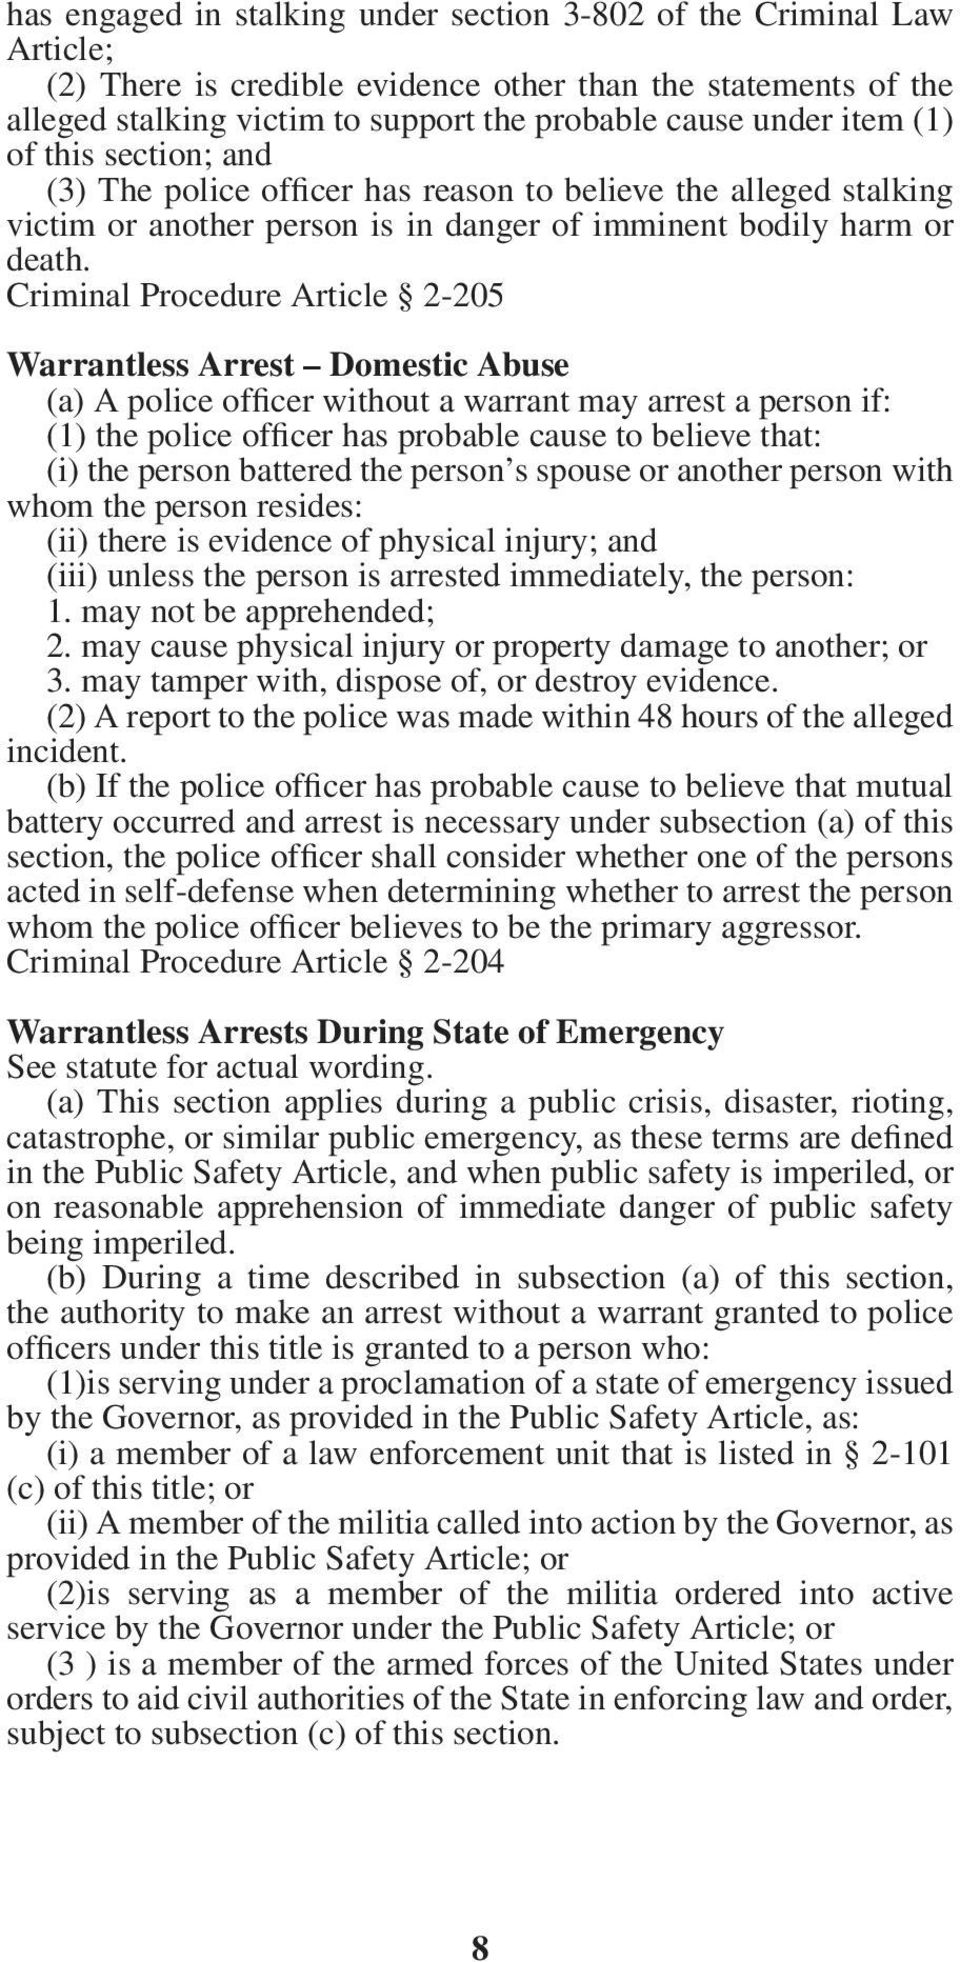 Criminal Procedure Article 2-205 Warrantless Arrest Domestic Abuse (a) A police officer without a warrant may arrest a person if: (1) the police officer has probable cause to believe that: (i) the